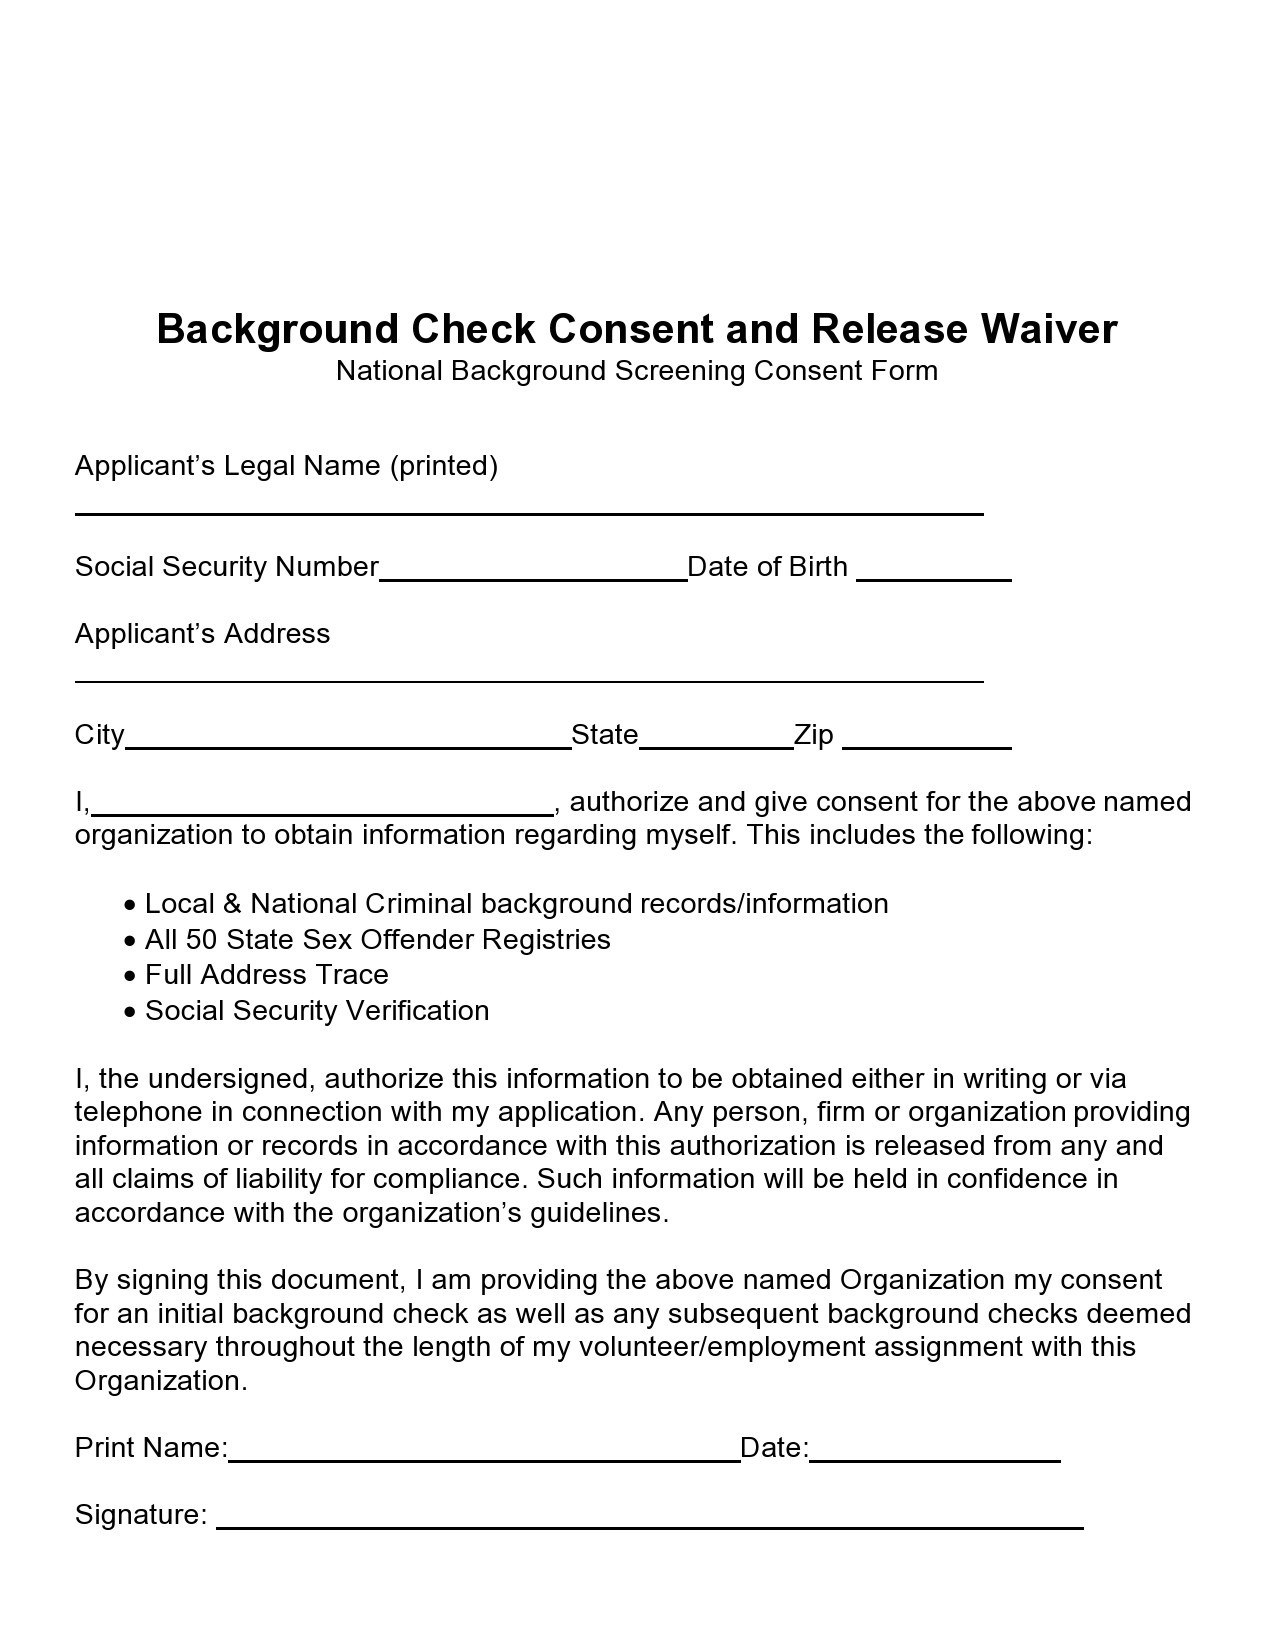 Free background check form 05